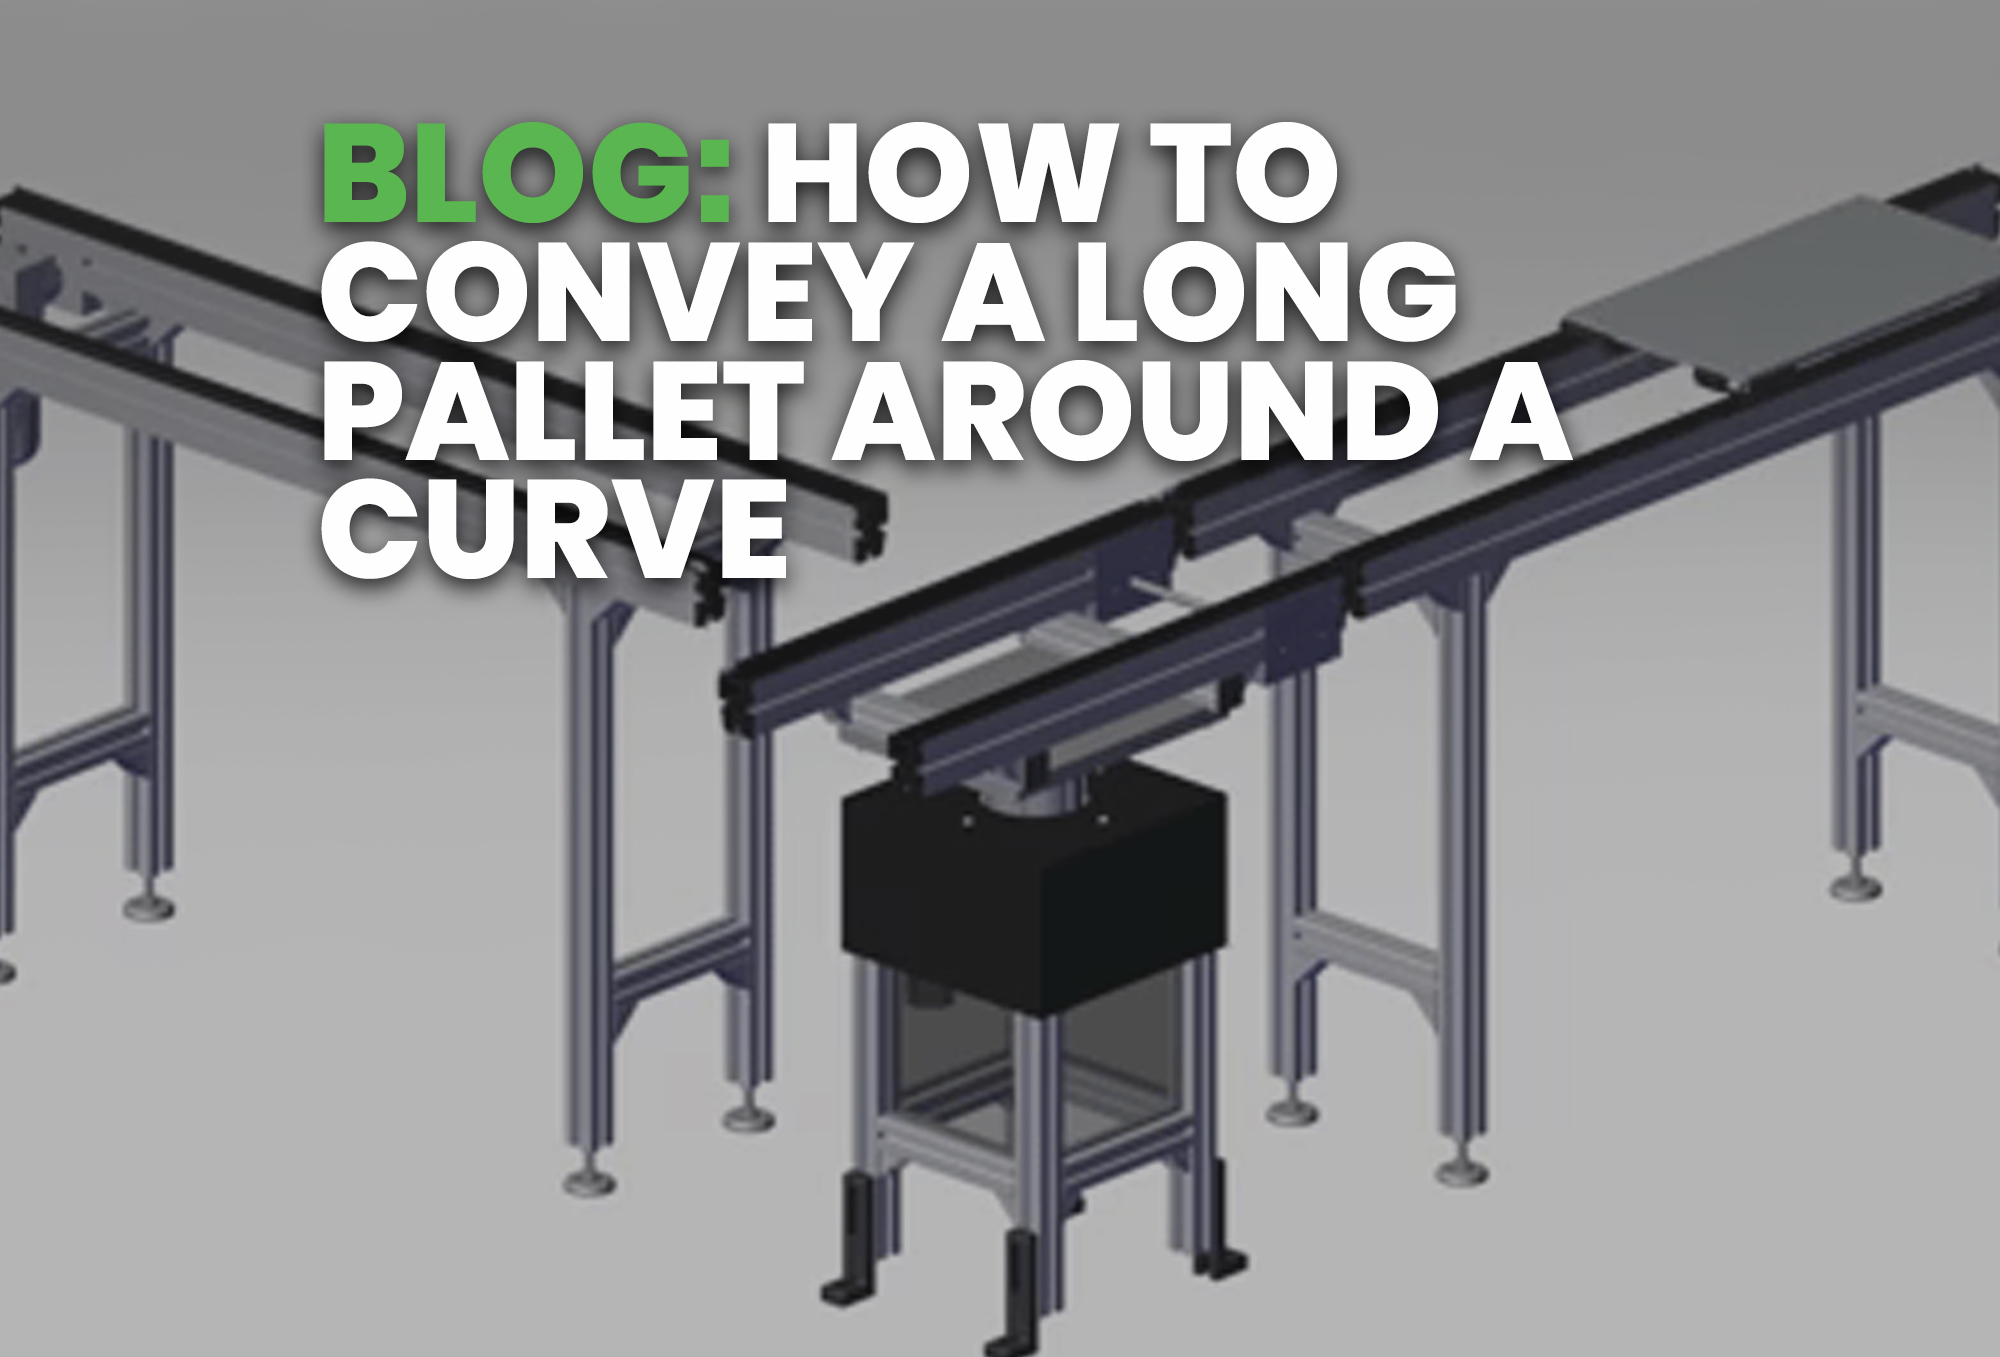 BLOG- How To Convey a Long Pallet Around A Curve